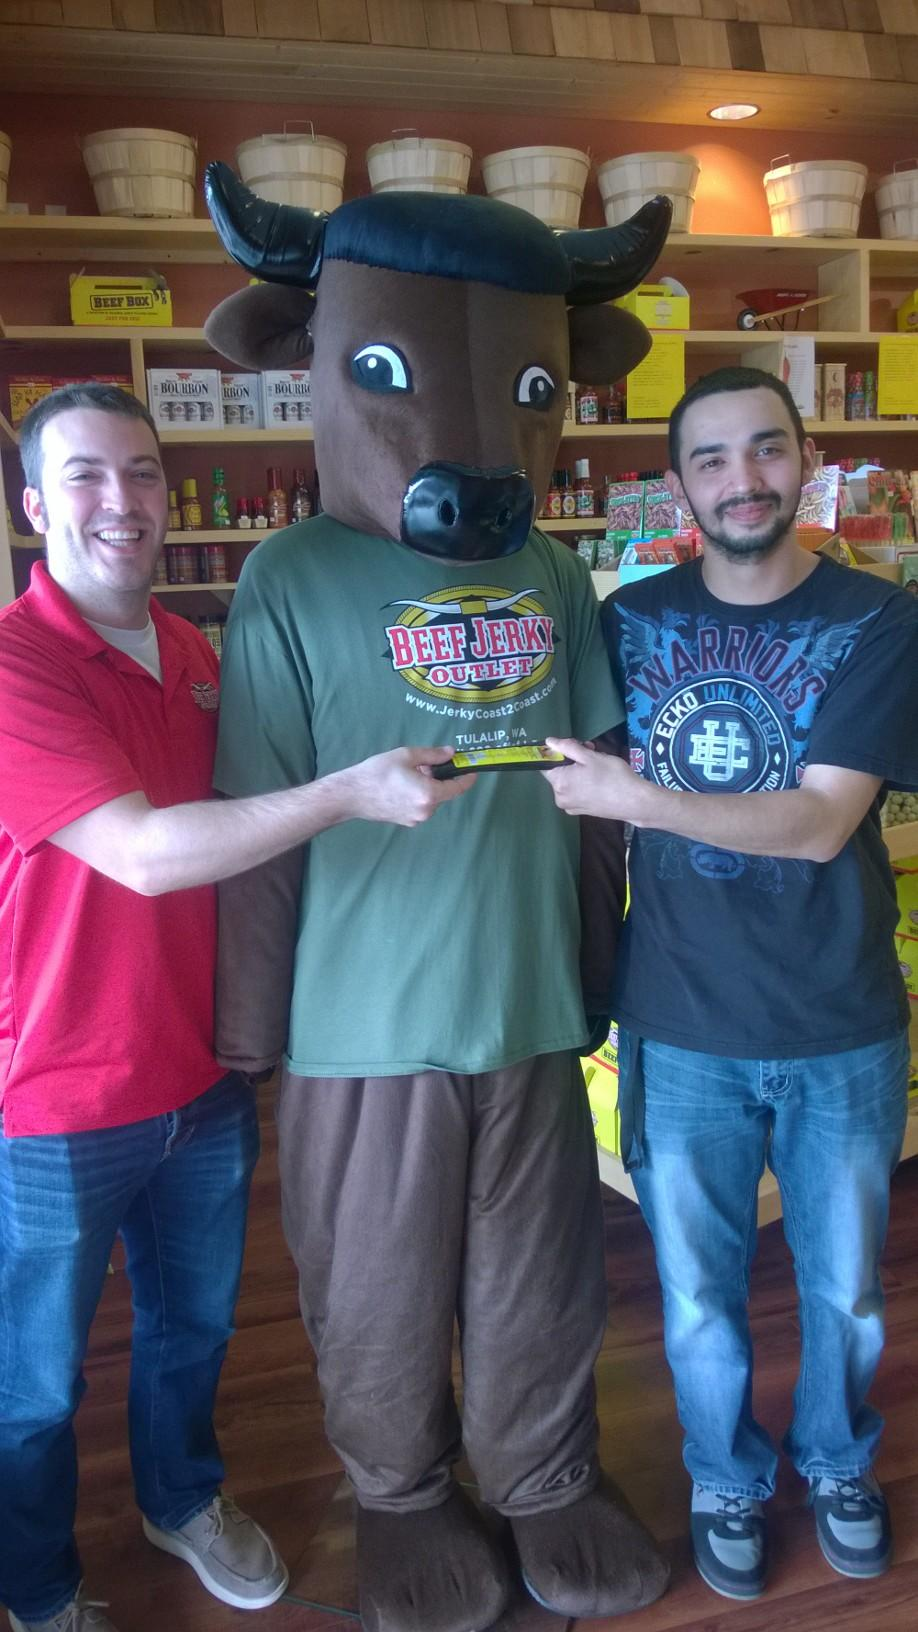 Beef Jerky Outlet - Tulalip, WA image 9